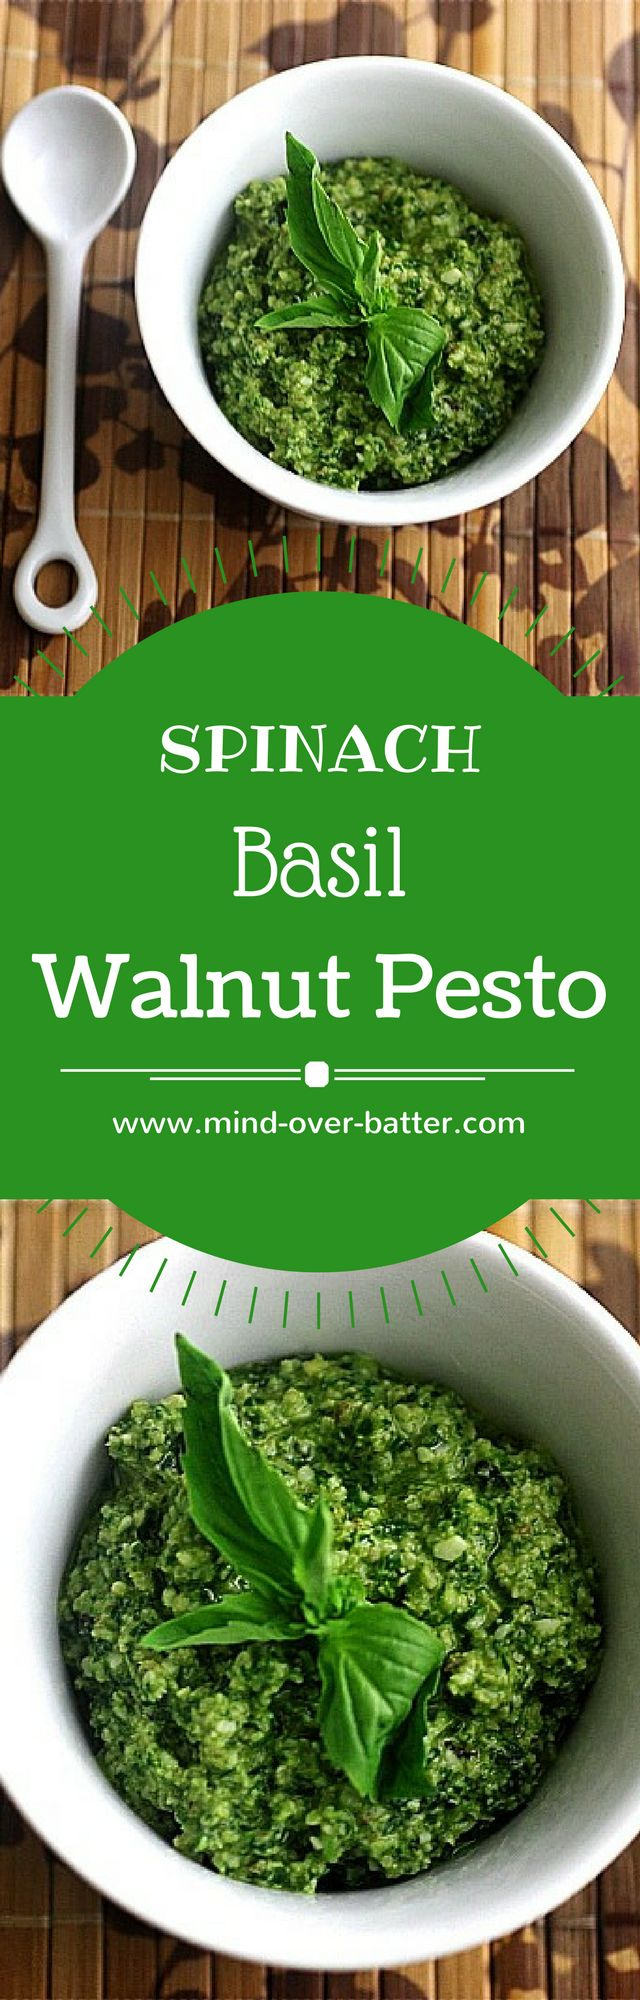 Spinach Basil Walnut Pesto -- www.mind-over-batter…